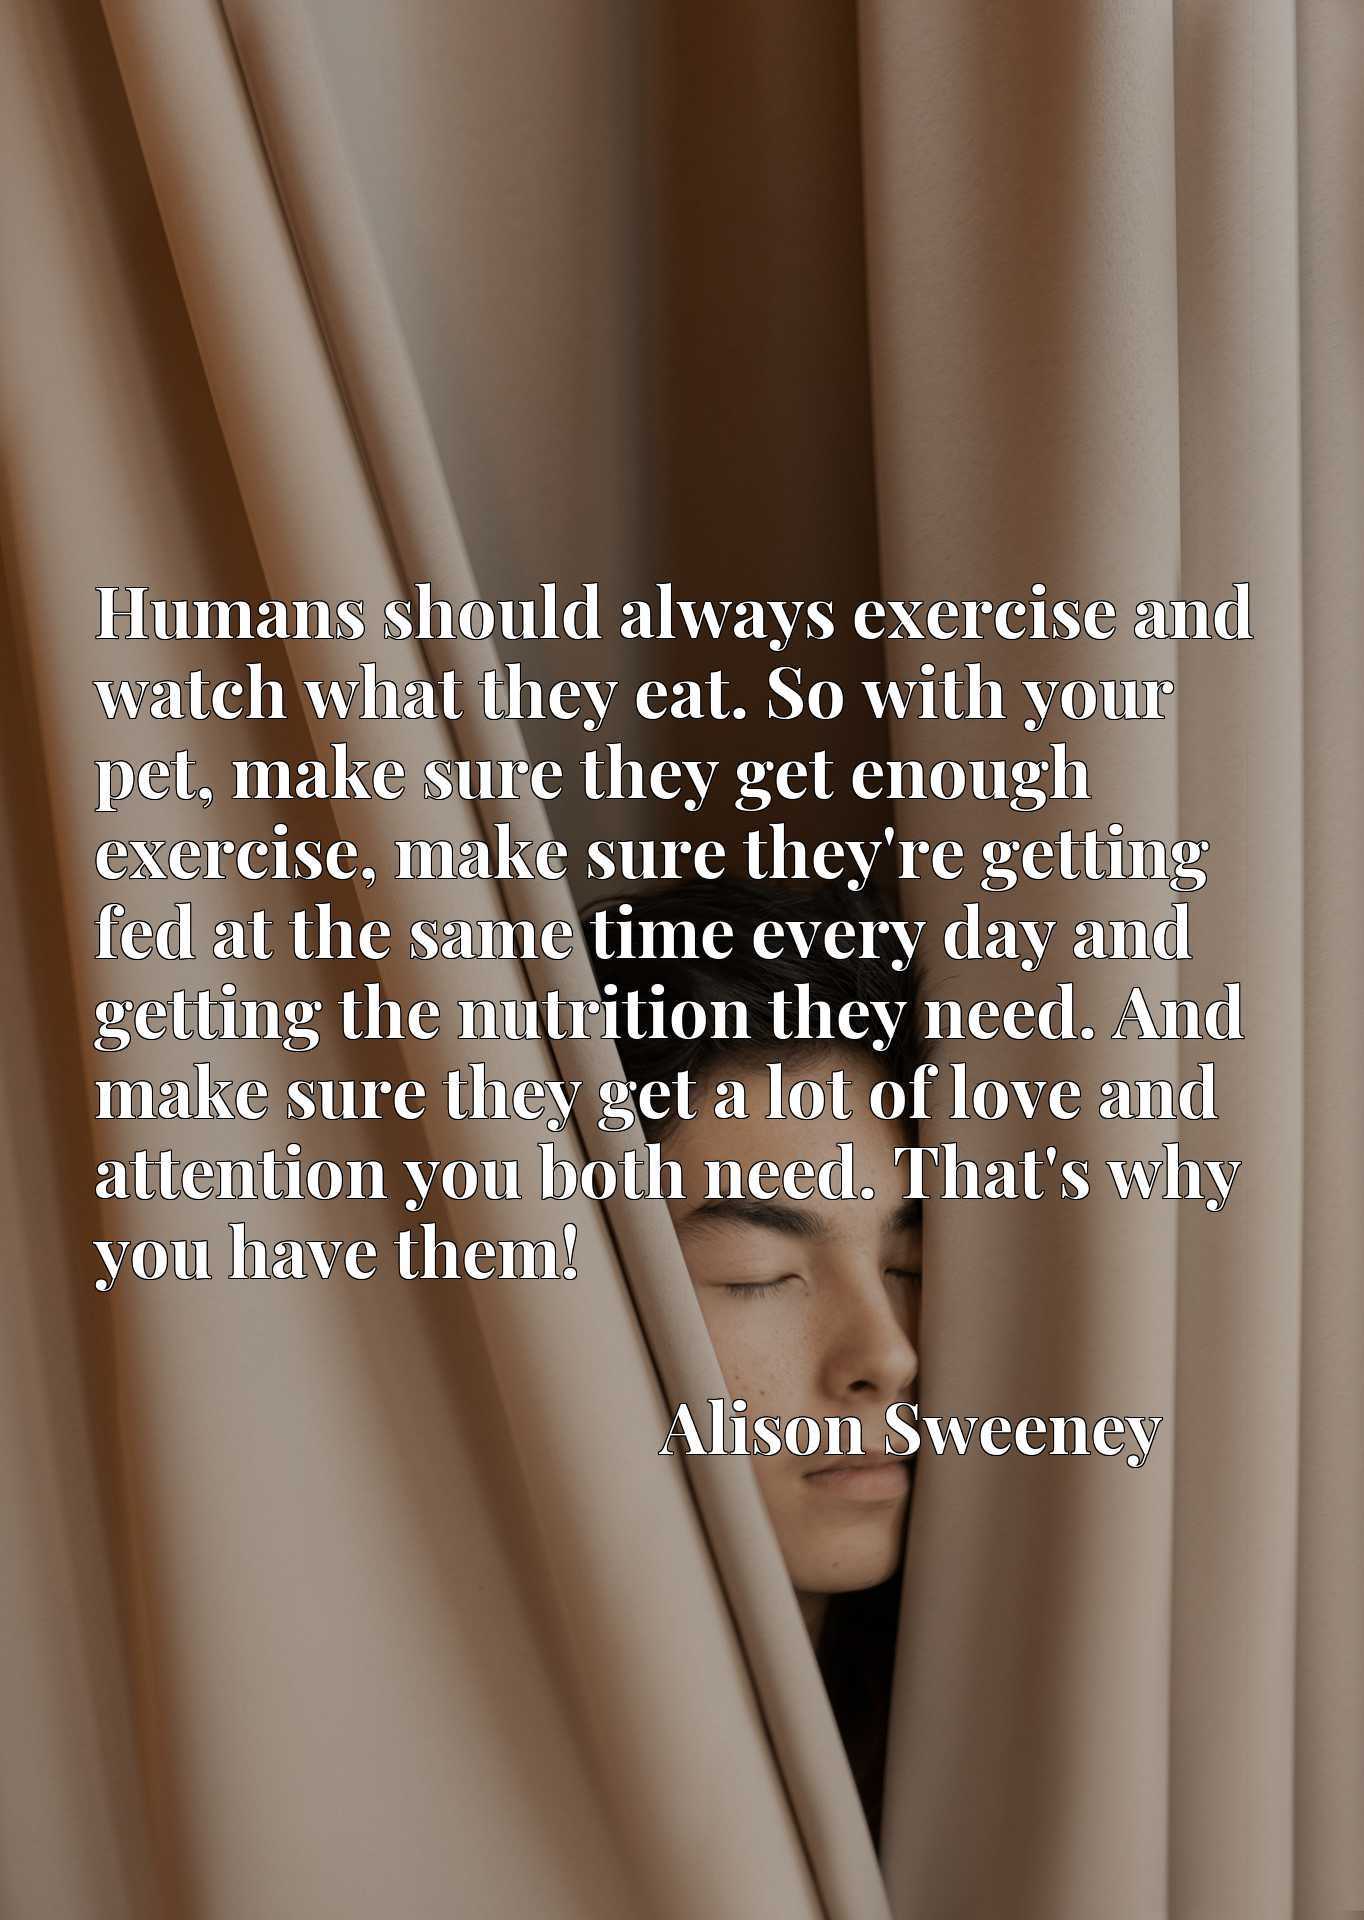 Humans should always exercise and watch what they eat. So with your pet, make sure they get enough exercise, make sure they're getting fed at the same time every day and getting the nutrition they need. And make sure they get a lot of love and attention you both need. That's why you have them!